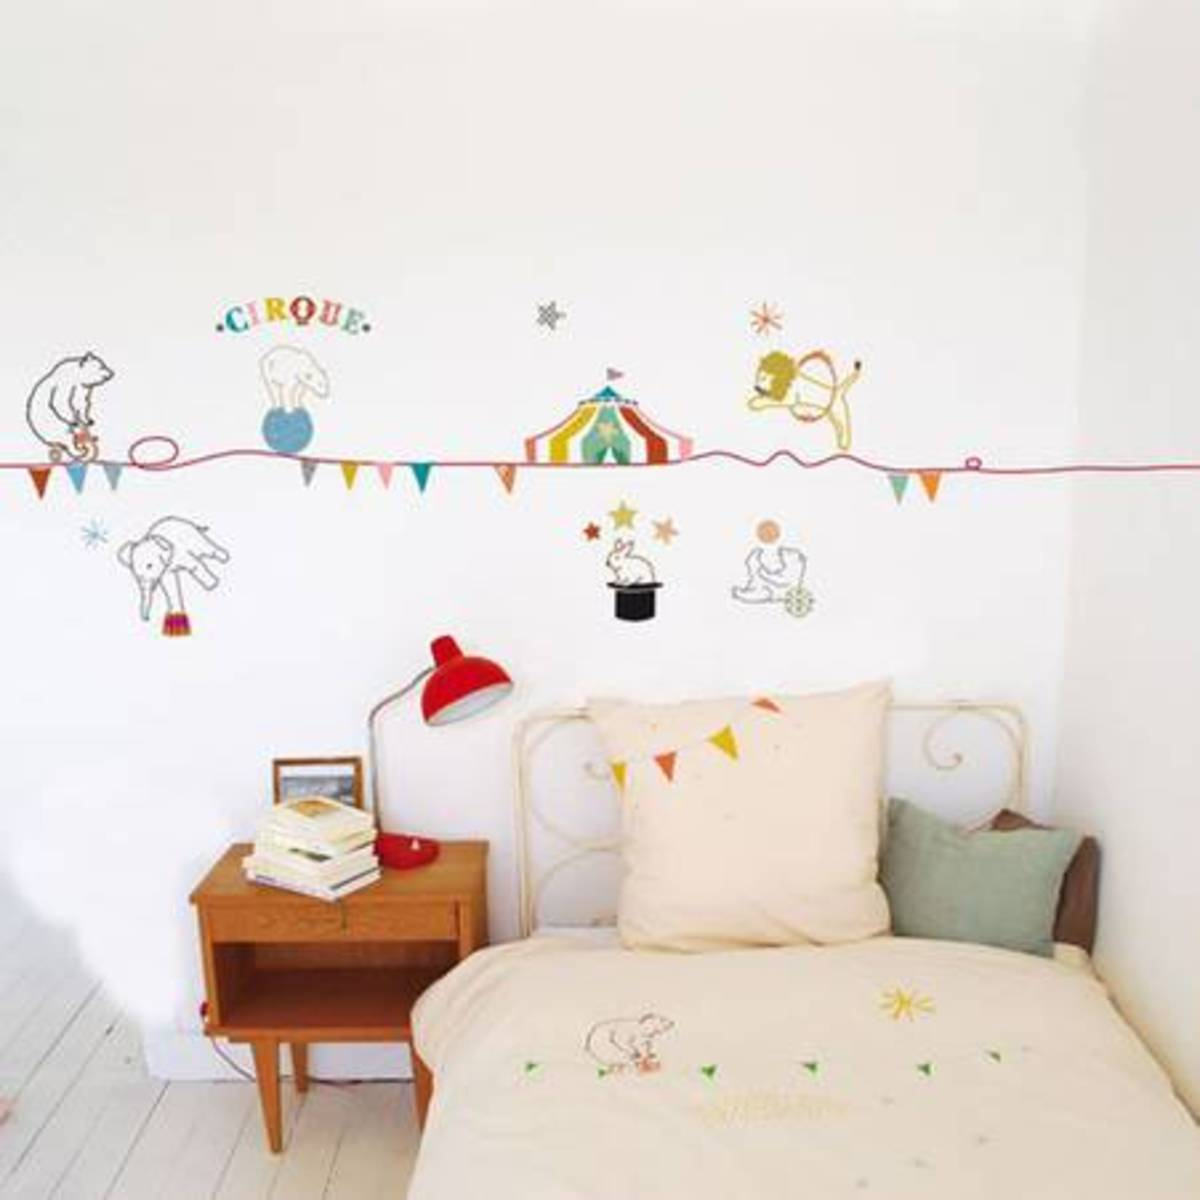 Une-chambre-d-enfant-ambiance-cirque_reference2